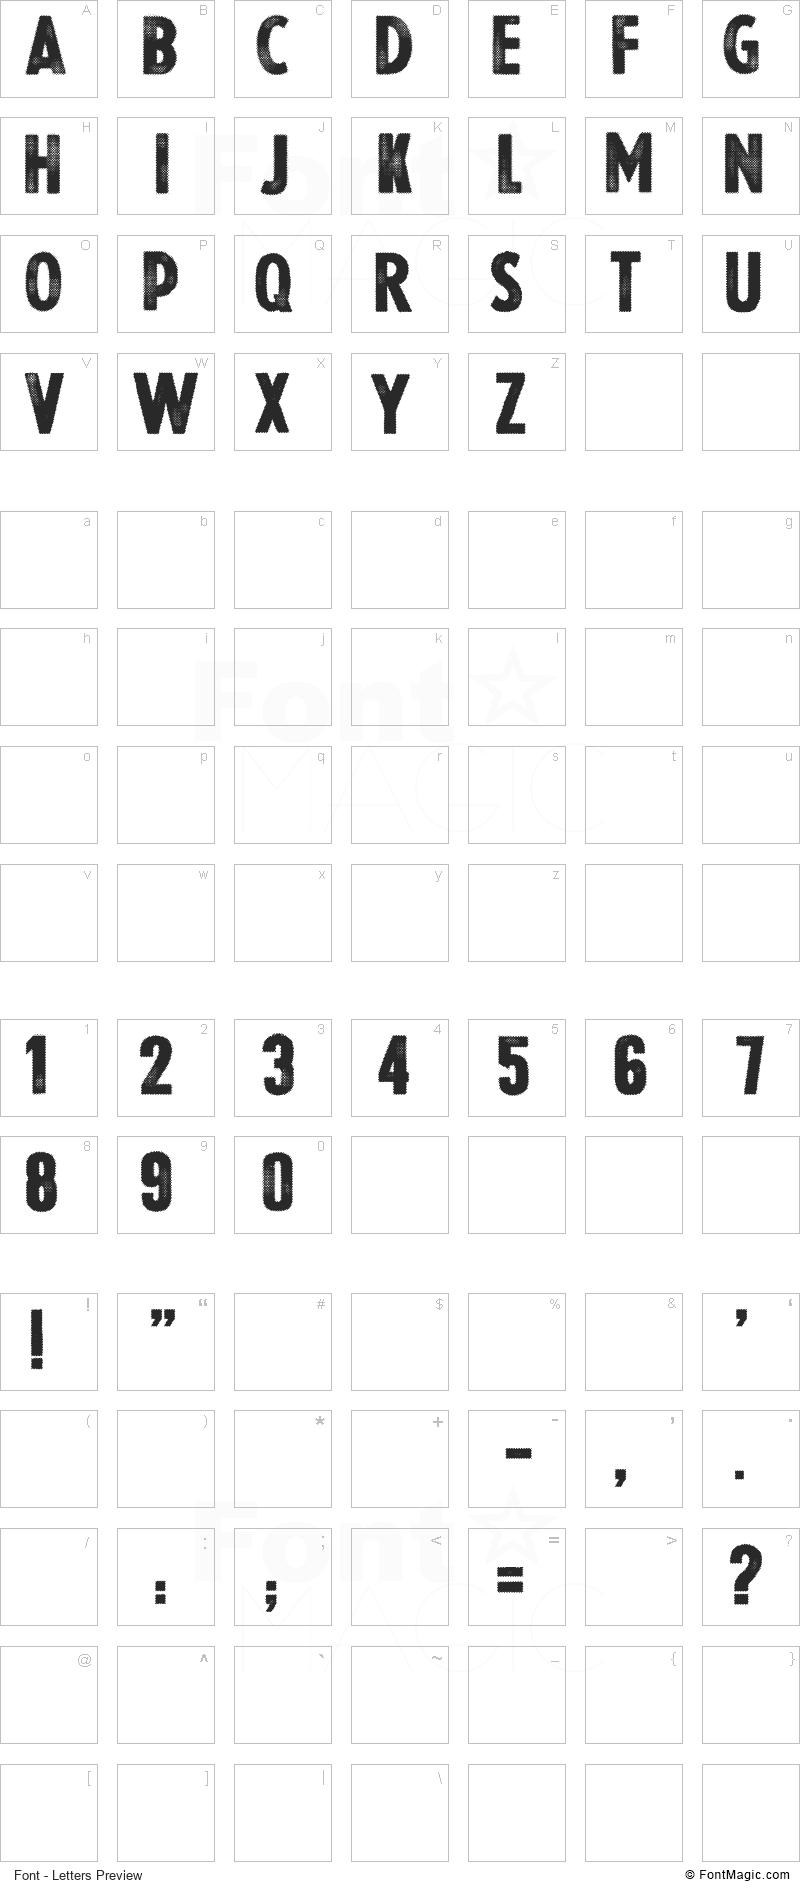 Halftoned Backup Font - All Latters Preview Chart